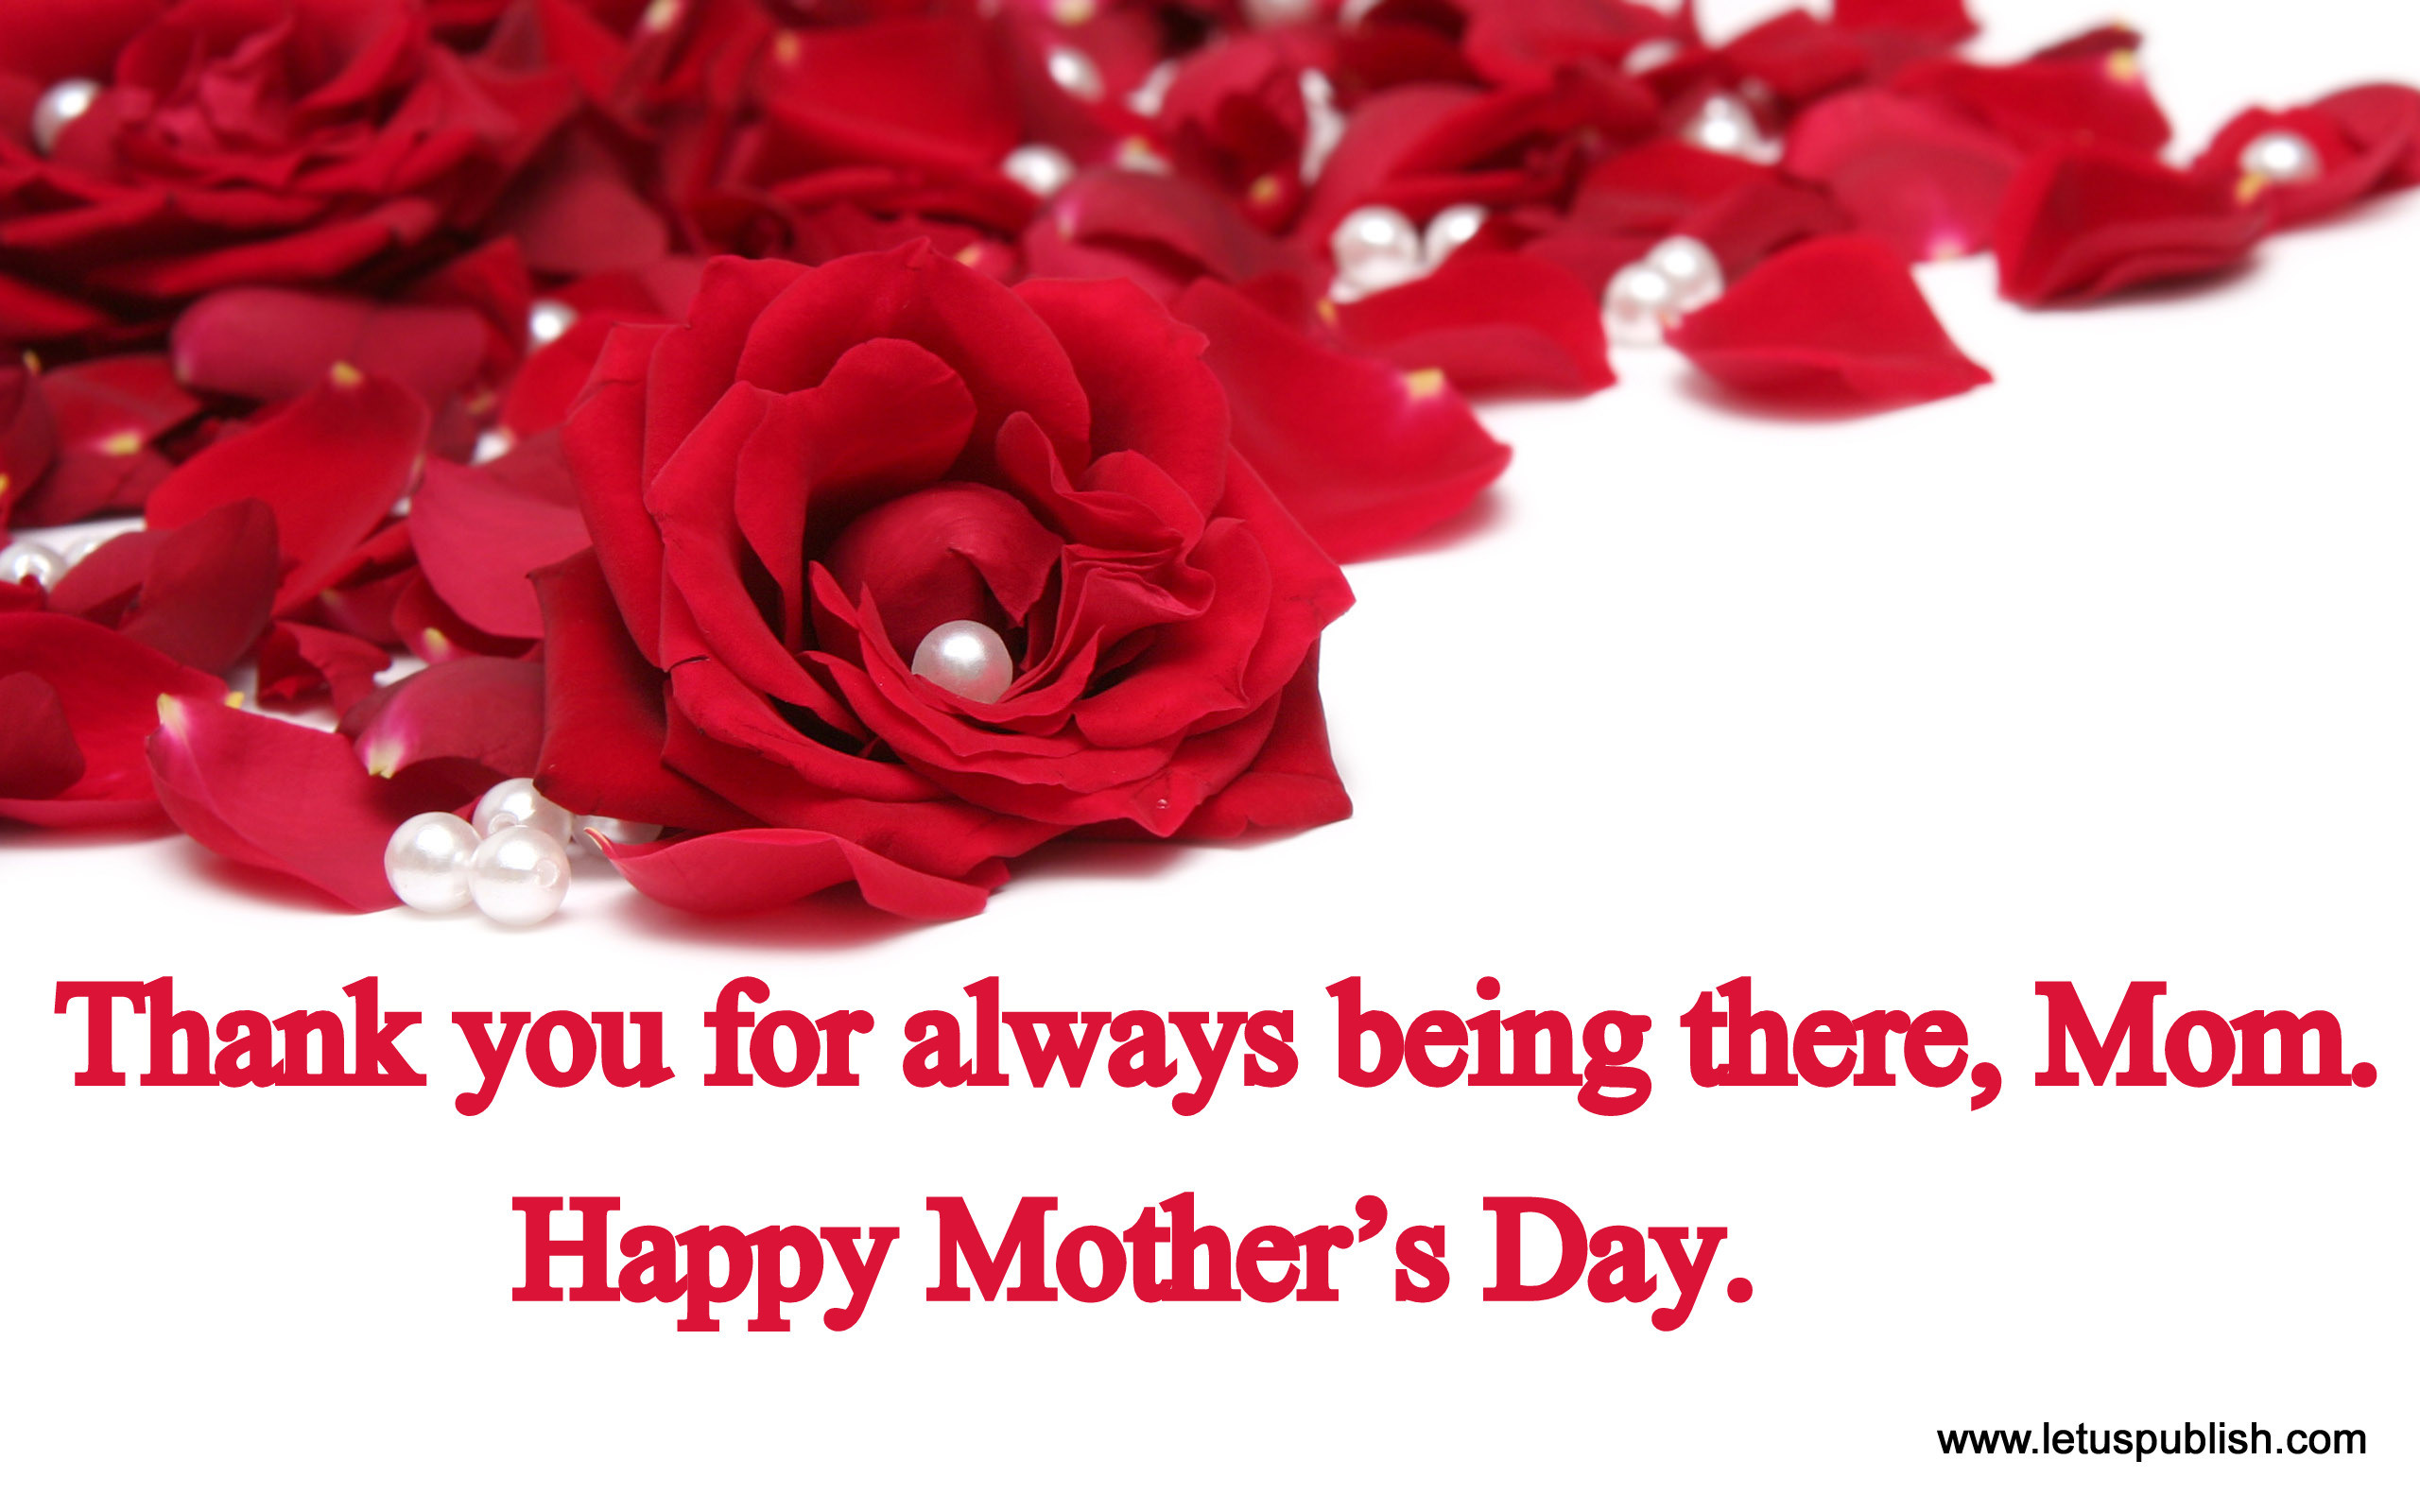 Best Mother S Day Wallpaper With Quotes   Data-src - Lovely Mother Day Quotes - HD Wallpaper